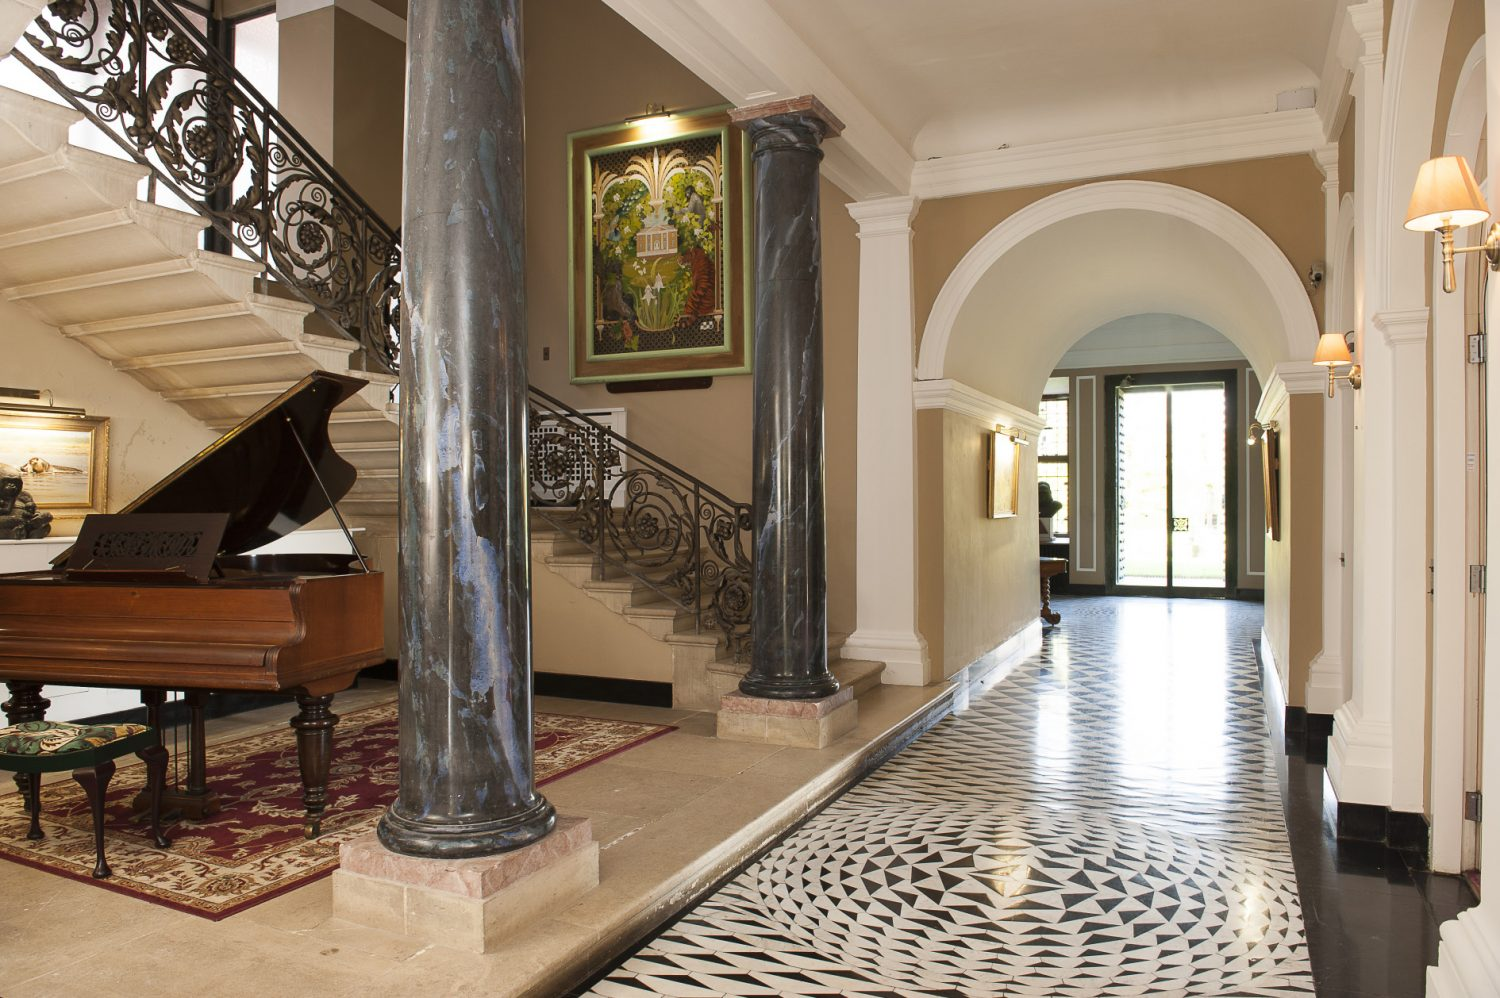 The dramatic tiled hall and passageway, which runs the length of the ground floor from east to west and is decorated with patterned black and white marble in varying concentric curves beneath a barrel-vaulted ceiling